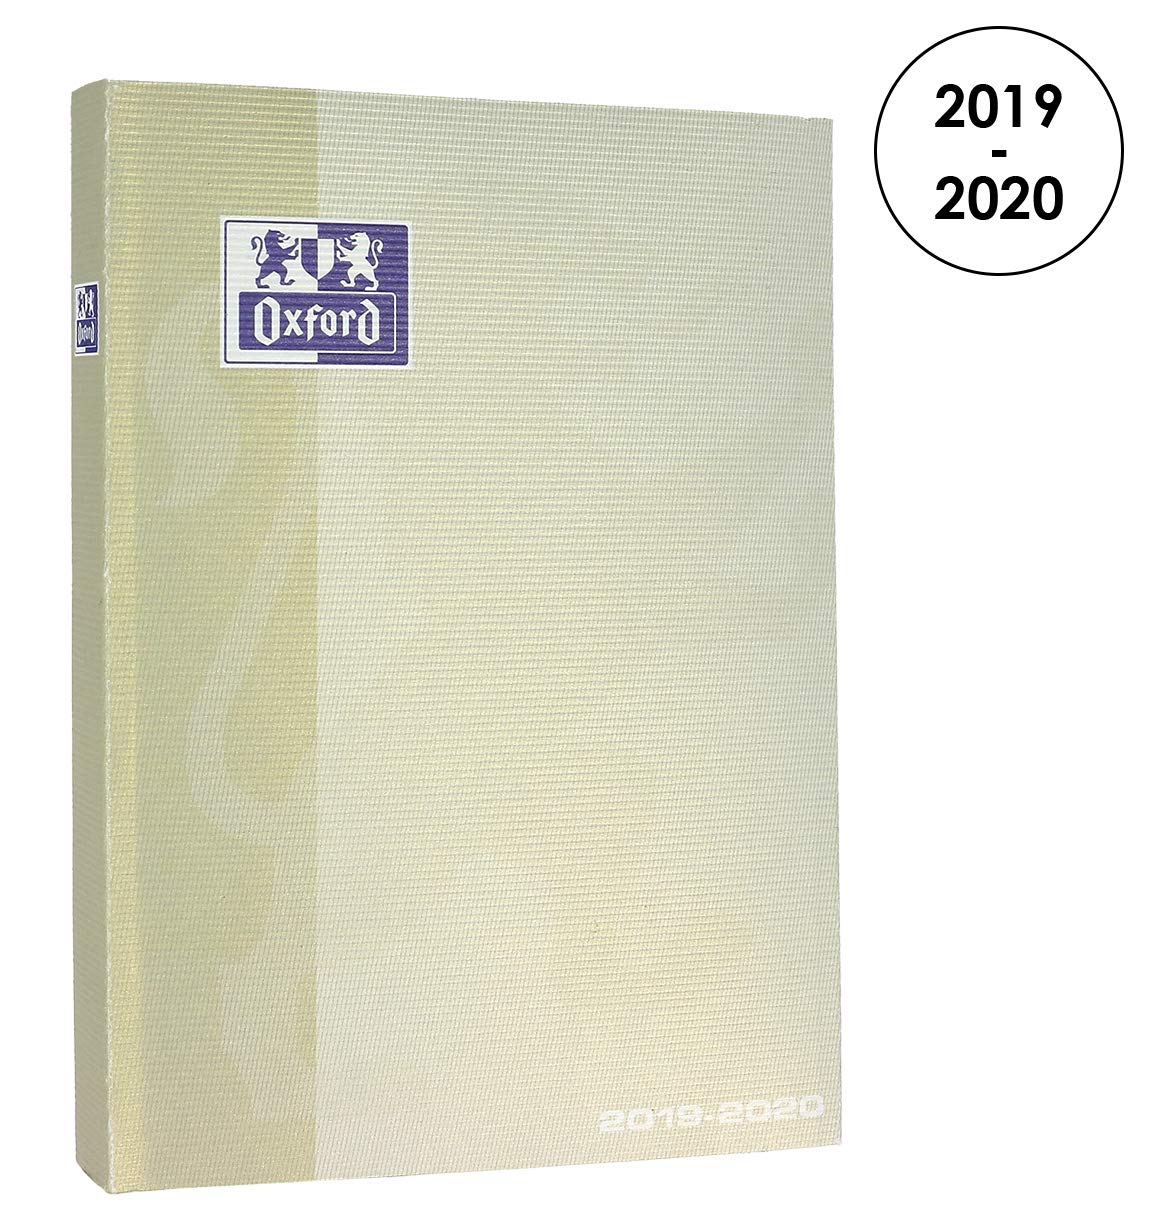 Oxford School Limited - Agenda escolar diaria 2019-2020, 1 ...